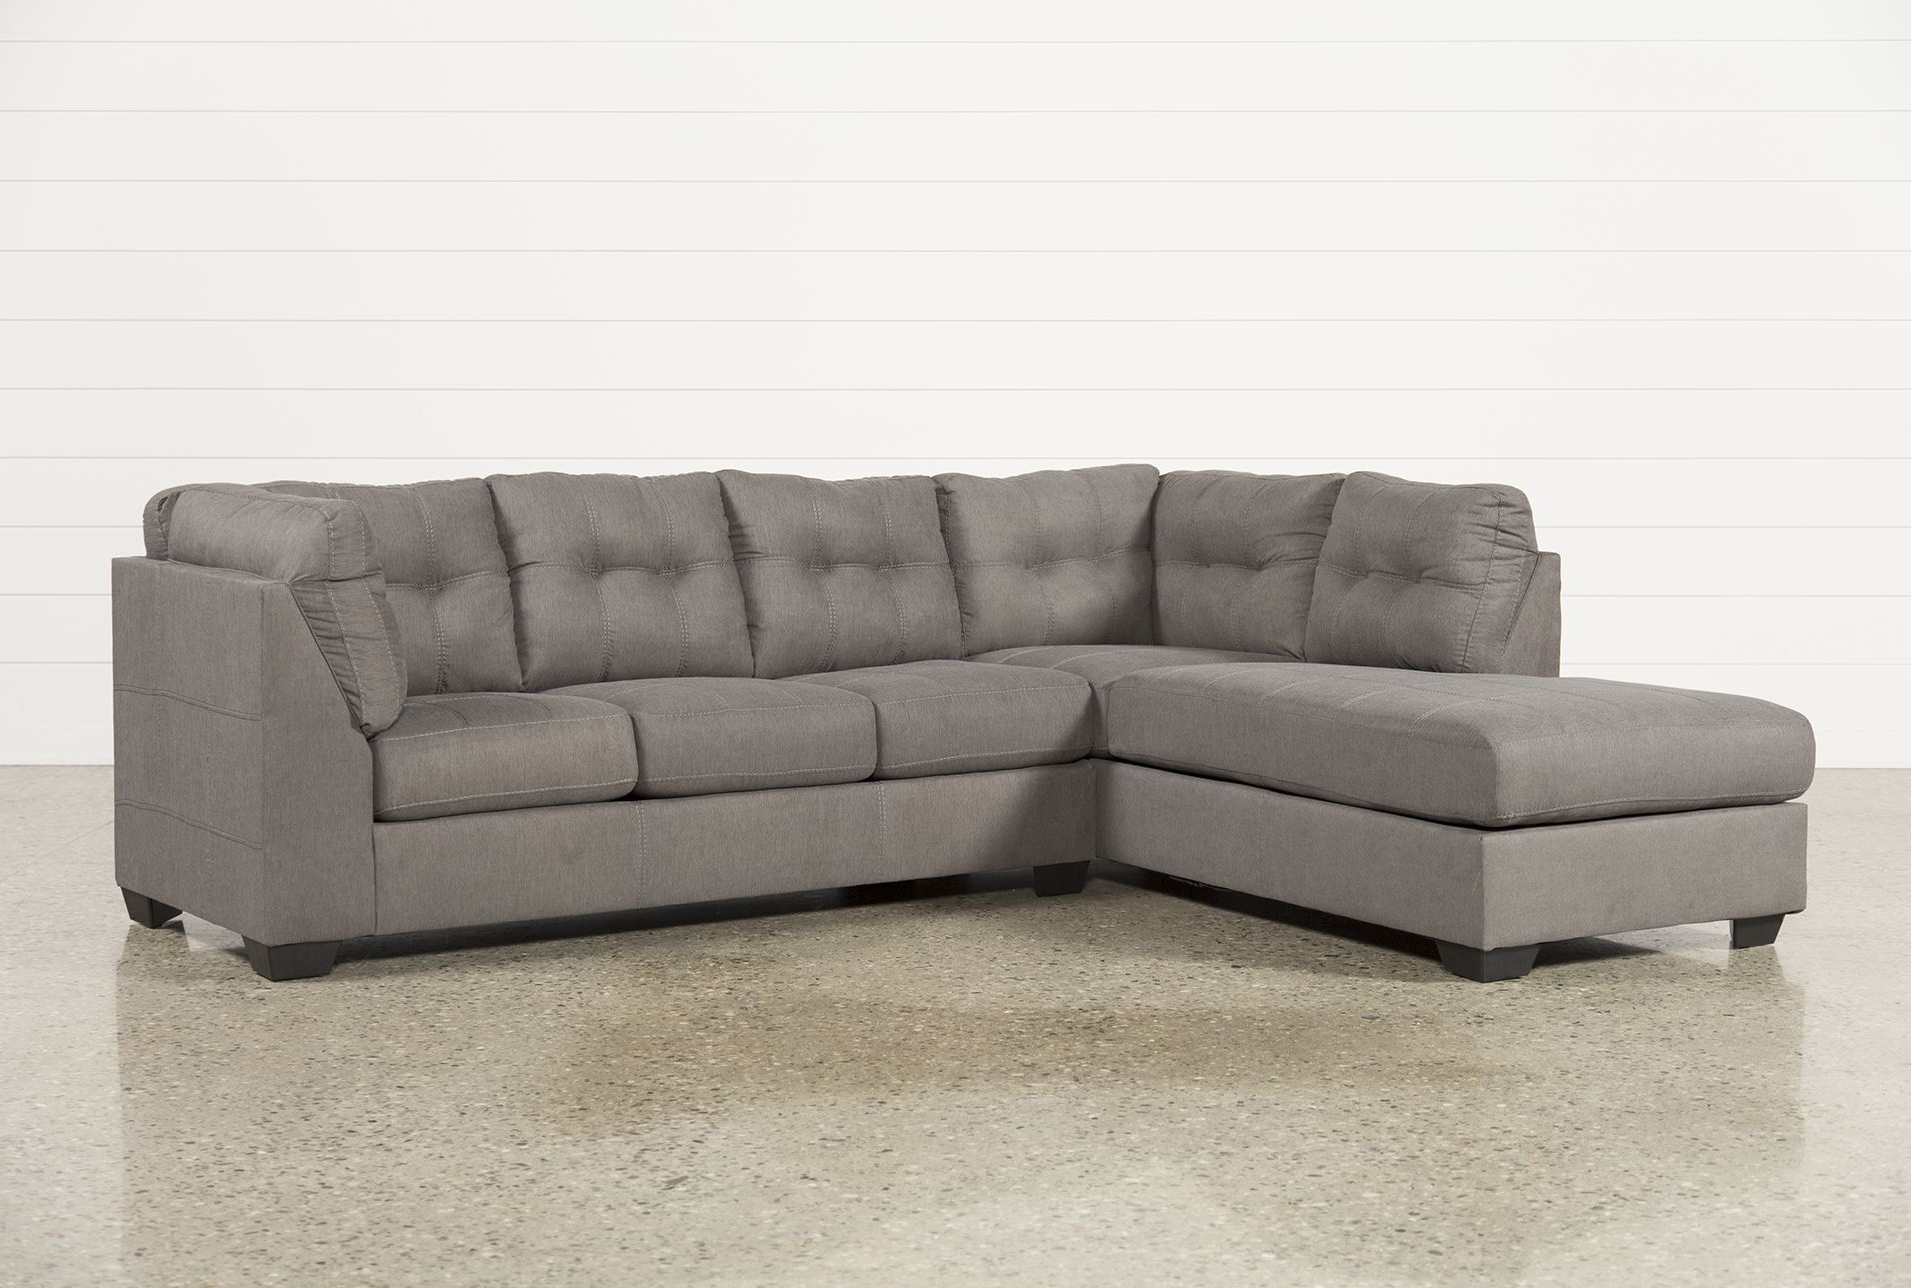 2 Piece Sectionals With Chaise With Most Up To Date Gray Sectional Sofa With Chaise Lounge (View 6 of 15)